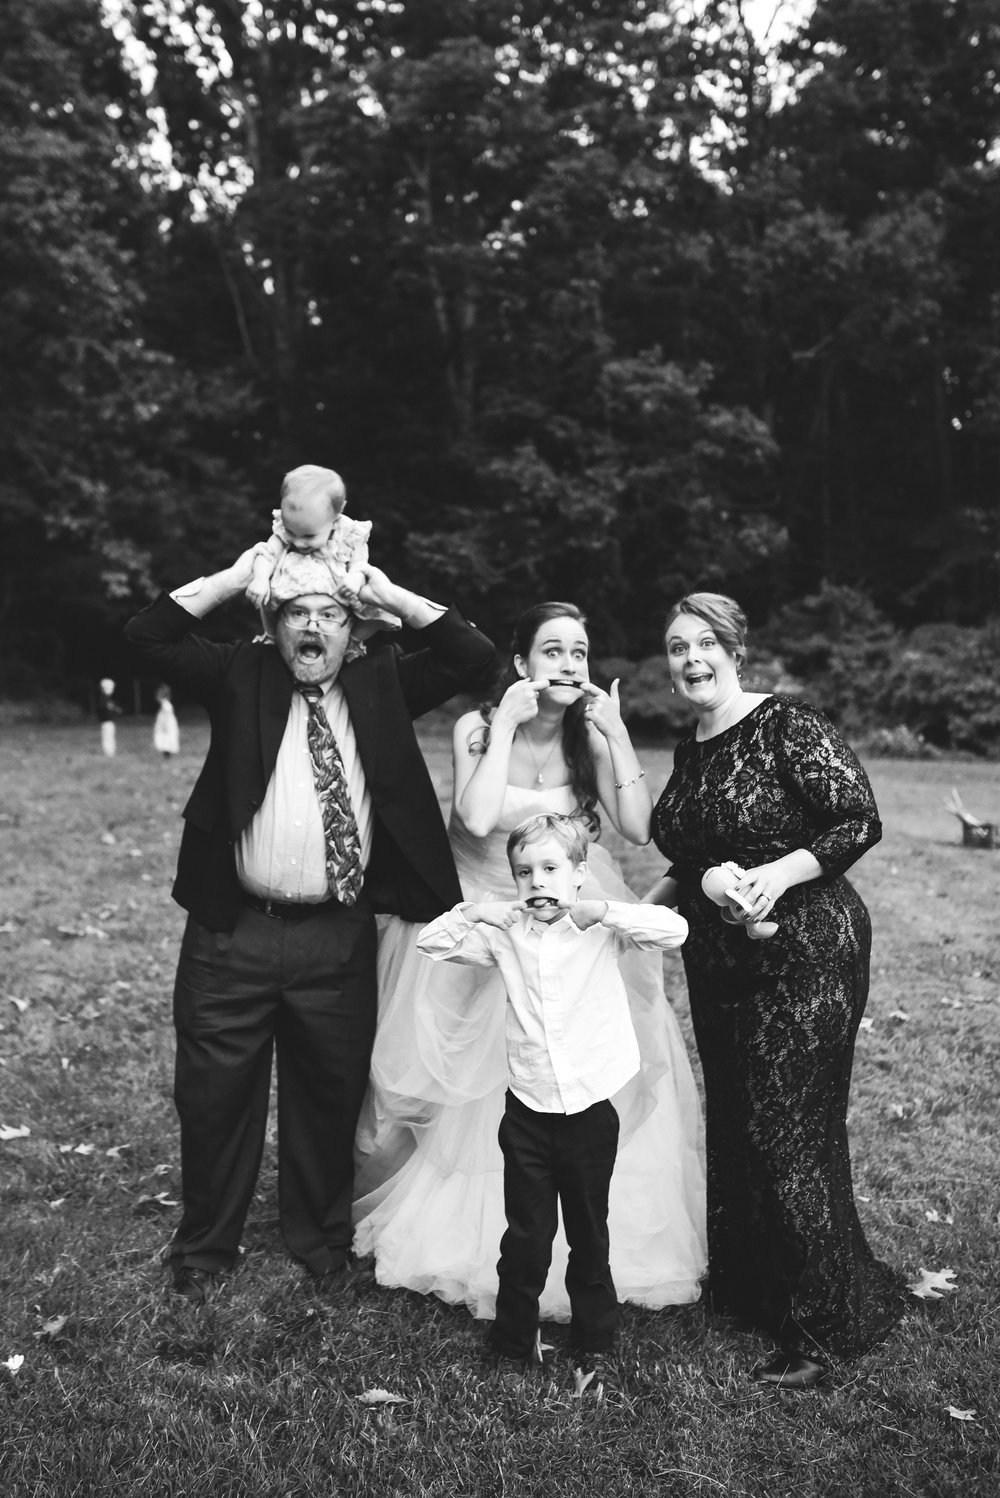 Vintage, DIY, Rustic, Germantown, Baltimore Wedding Photographer, Alternative, Casual, Outdoor Wedding, Church Wedding, Whimsical, Family Photo, Silly Photo, Kids Playing, Black and White Photo